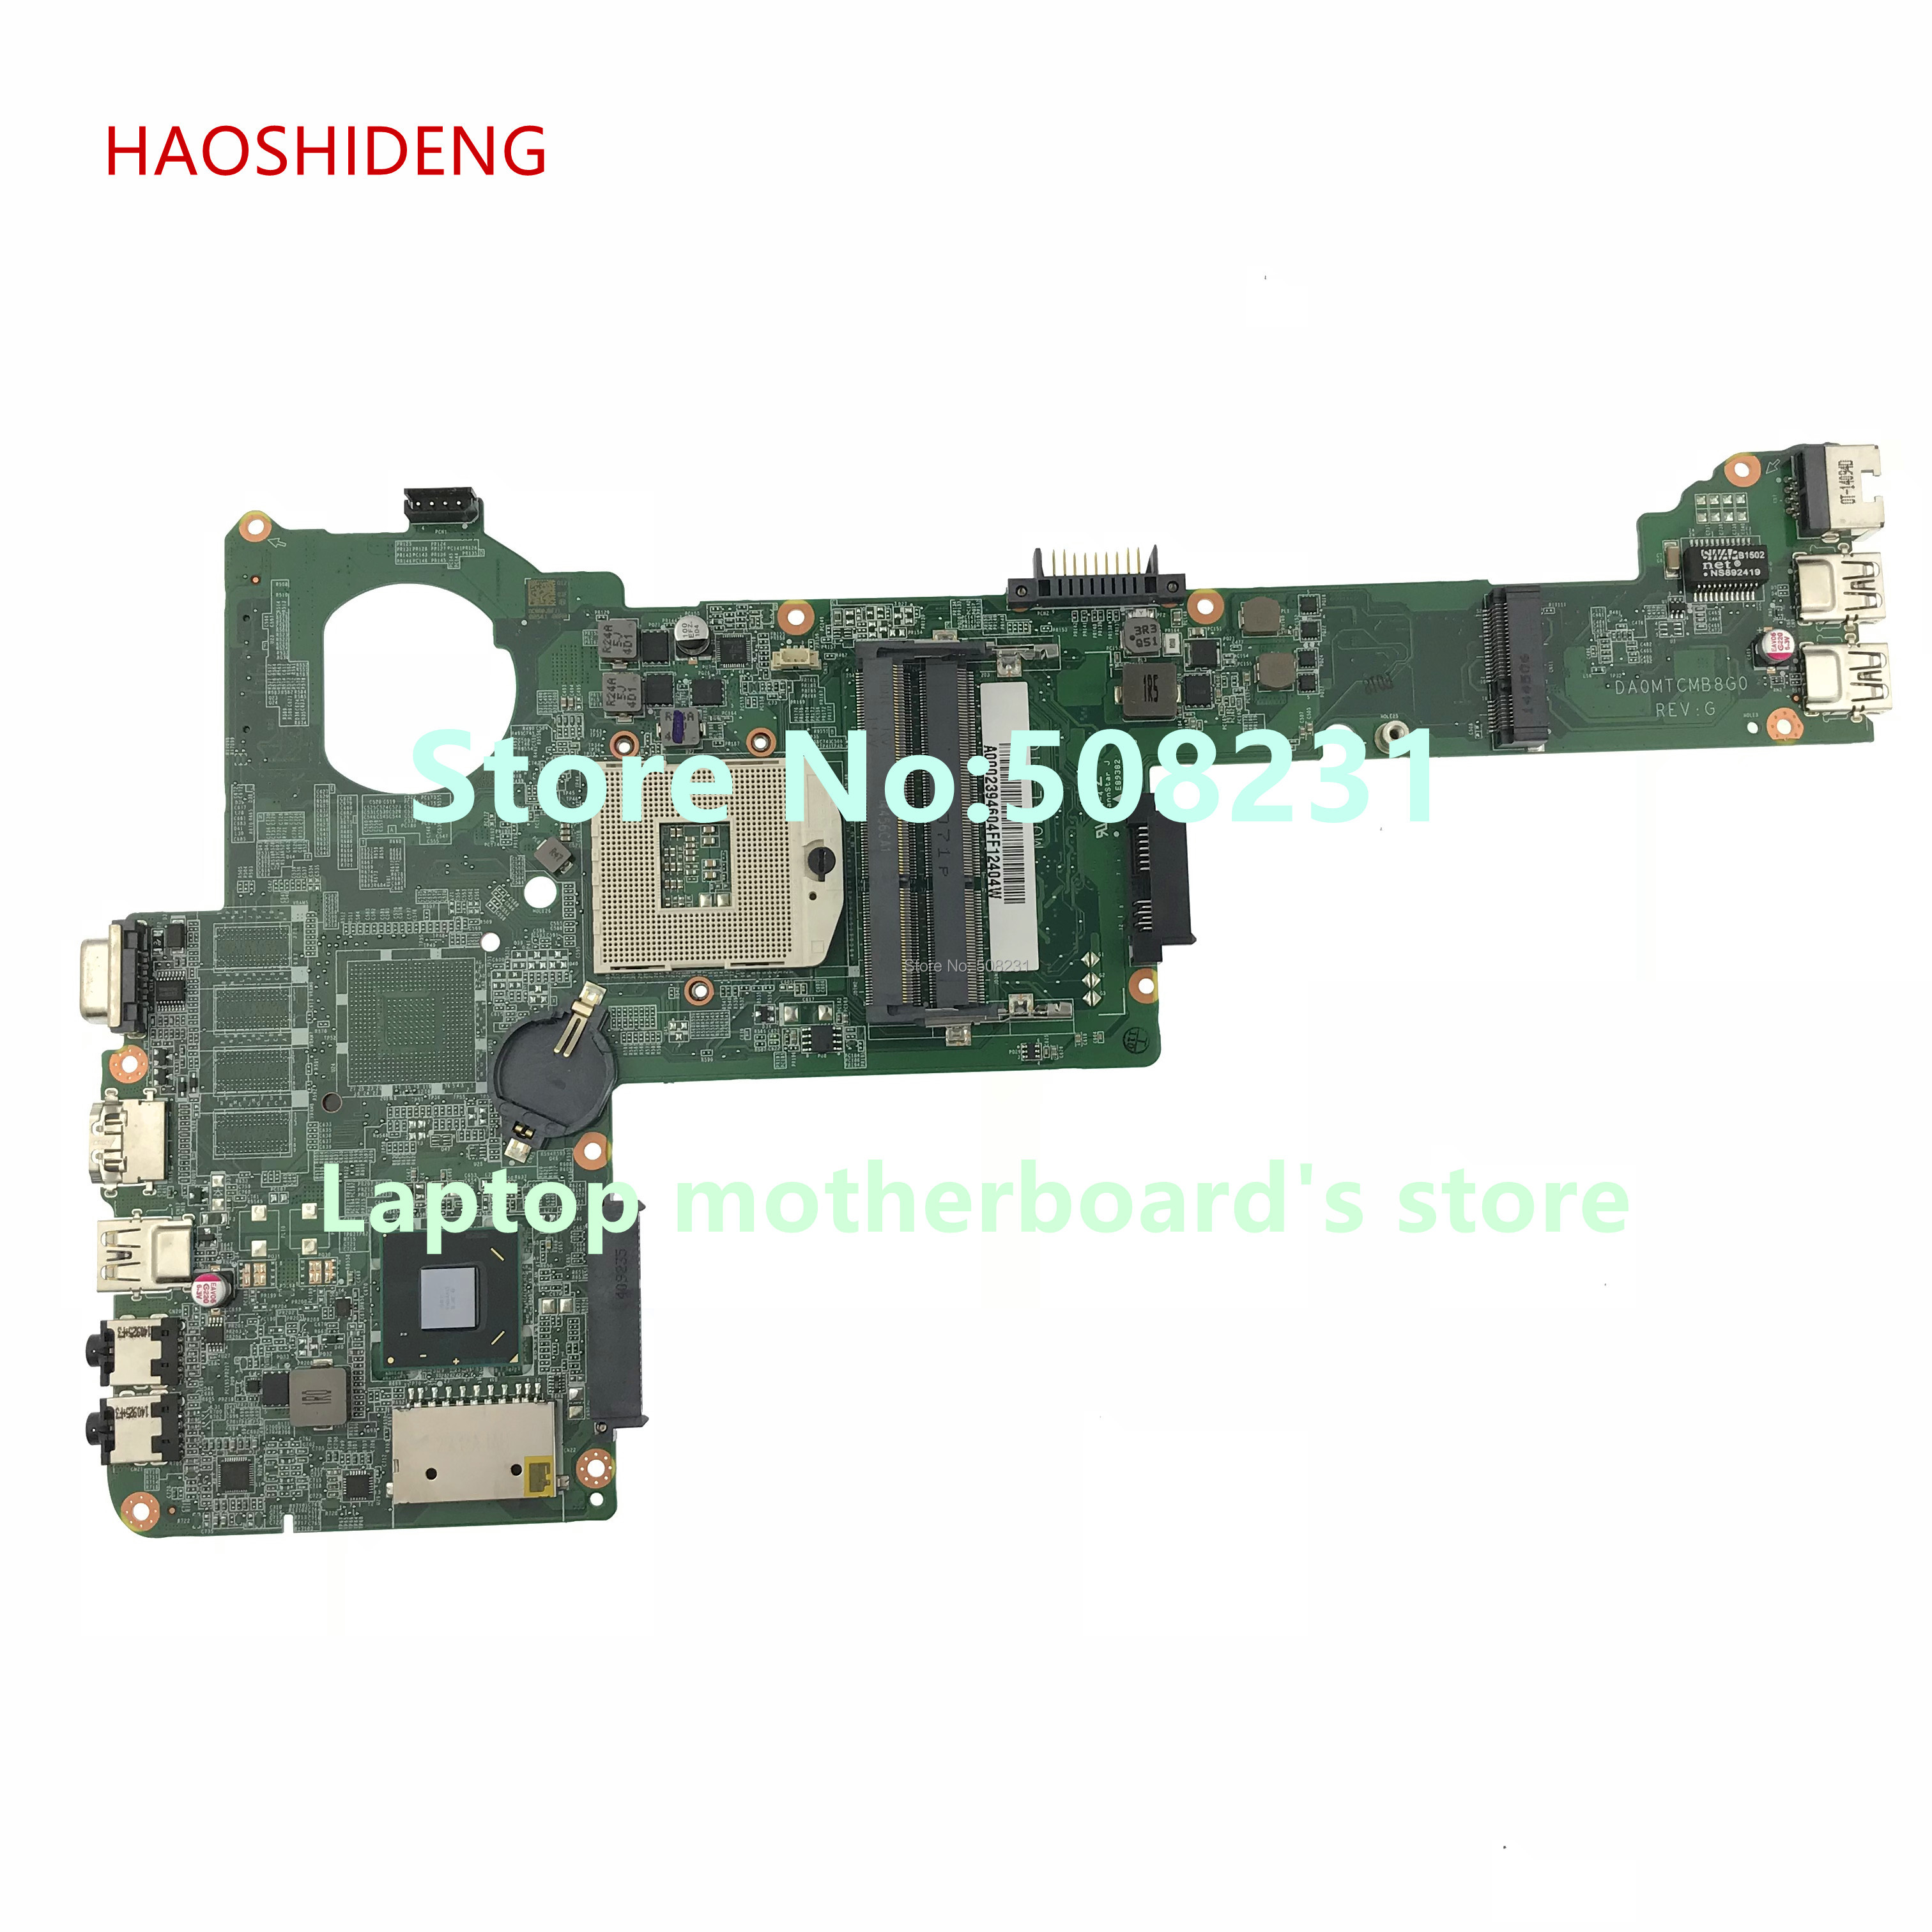 HAOSHIDENG A000239460 DA0MTCMB8G0 REV:G mainboard For Toshiba Satellite C40 C40-A Laptop Motherboard All functions fully Tested